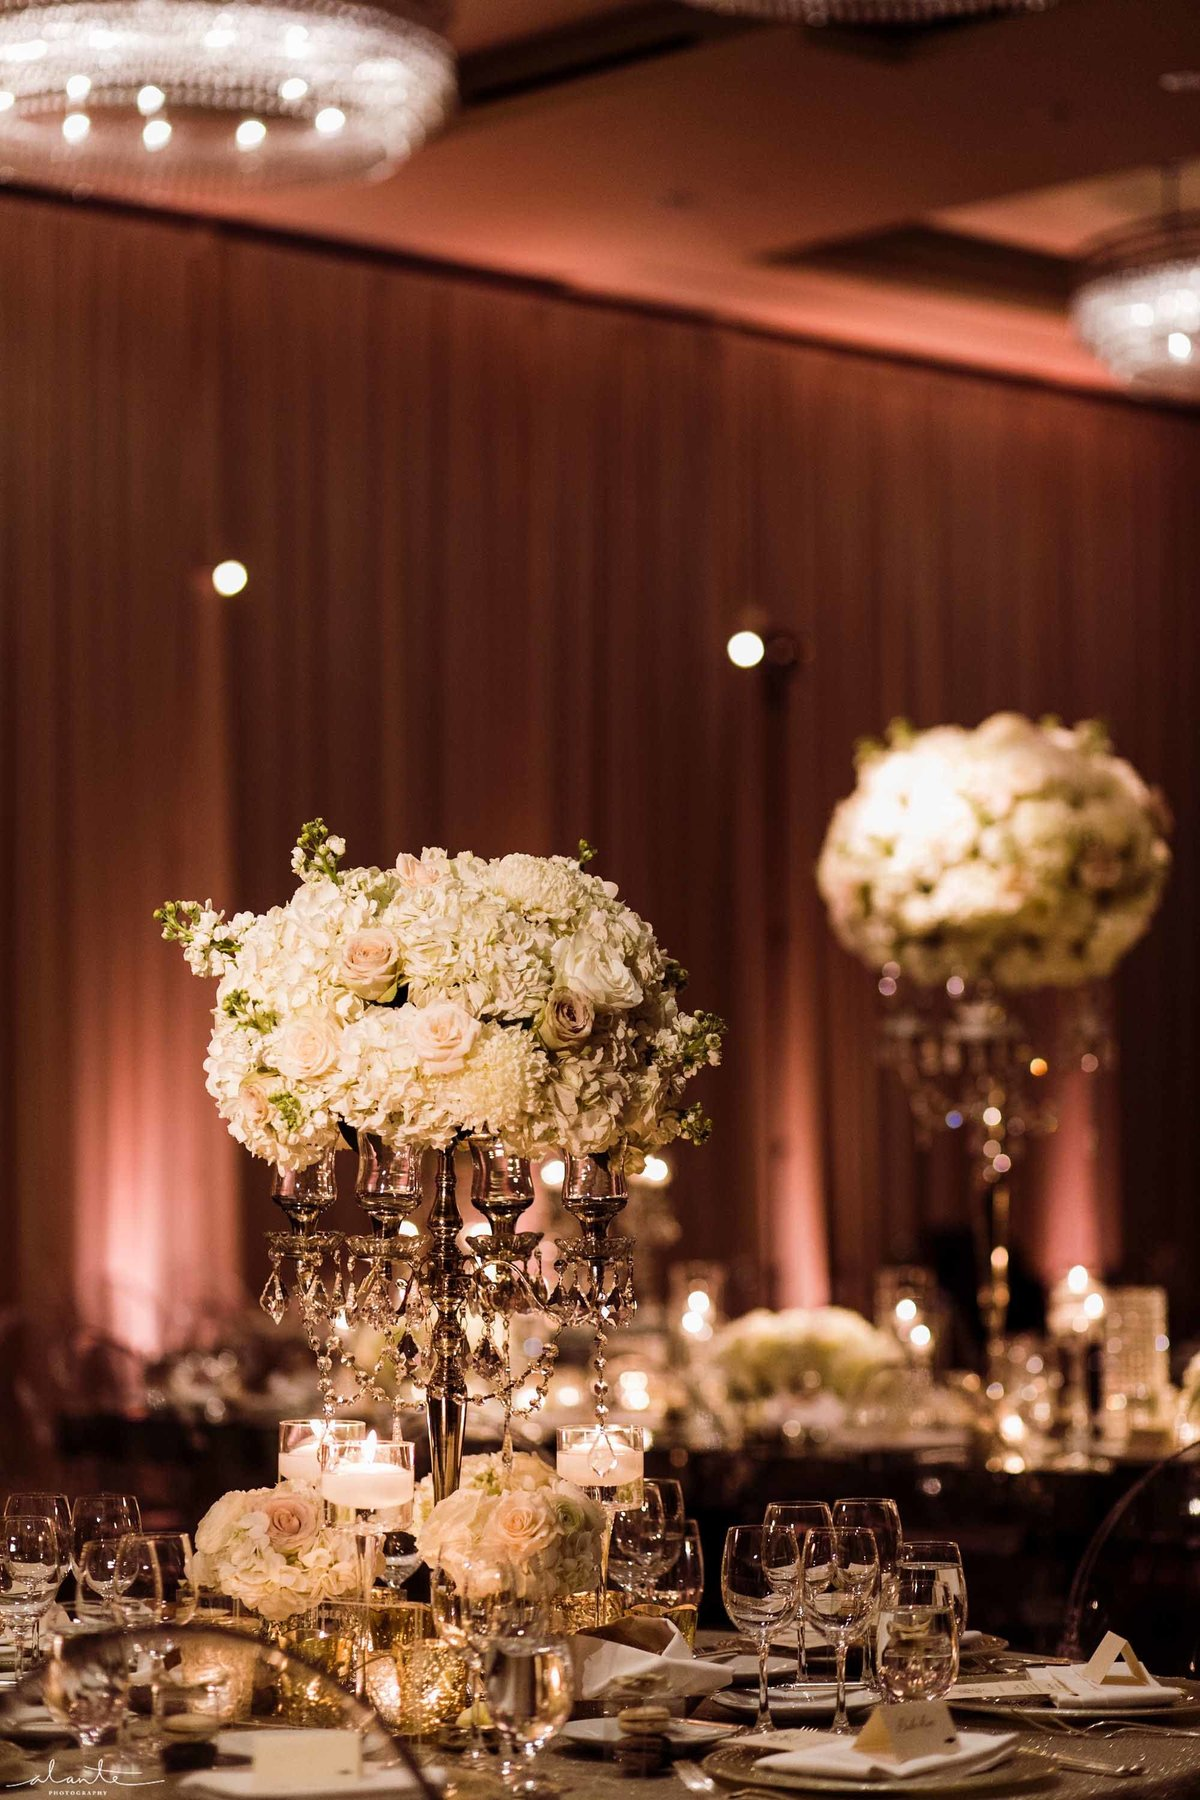 White stock, roses, and hydrangea make up these tall floral centerpieces.